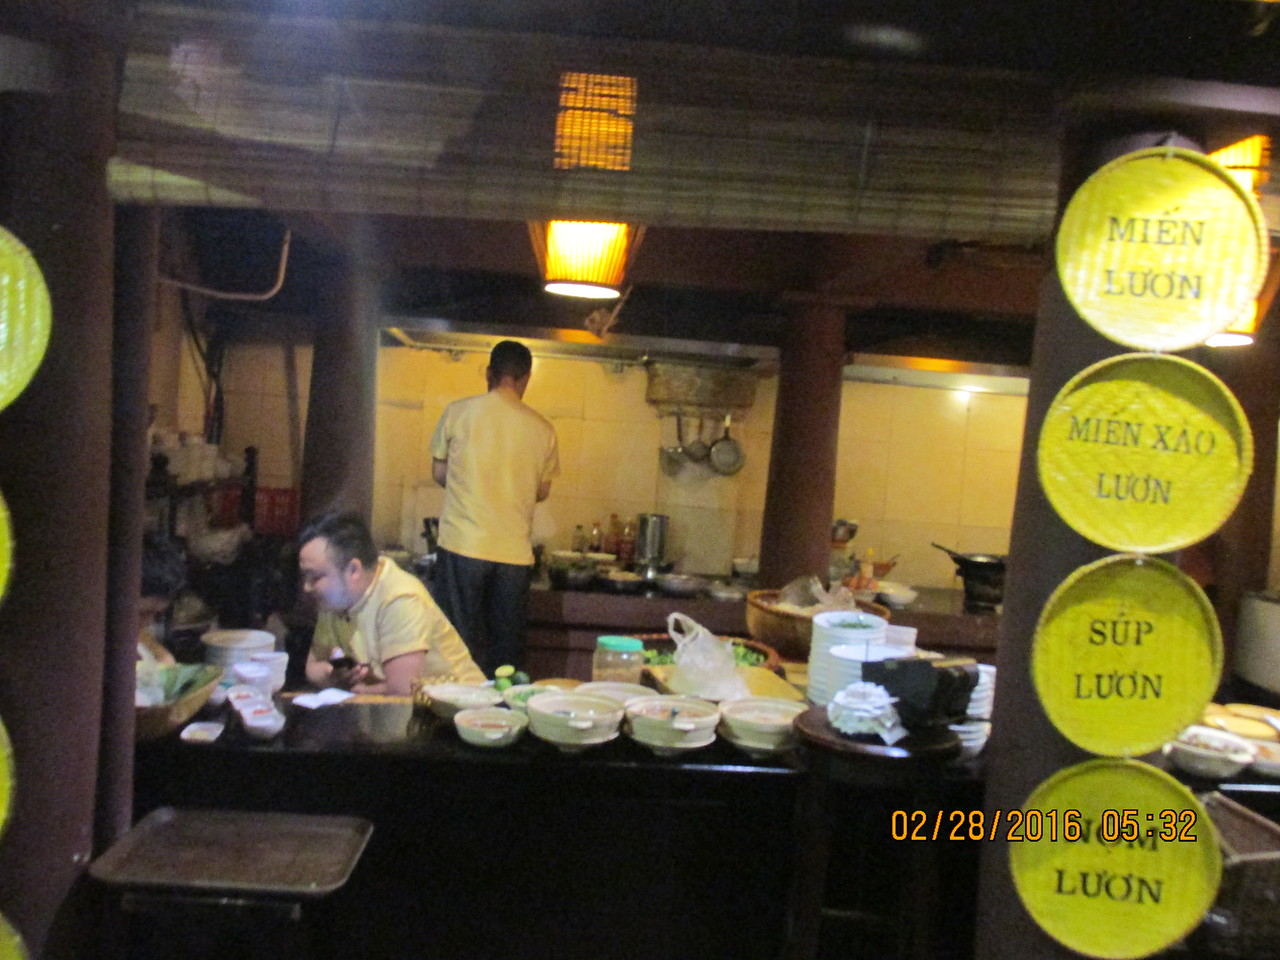 0068 - Quan An Ngon Restaurant on Phan Boi Chau - Hanoi Vietnam - Date Correct but Time on Pic is Wrong